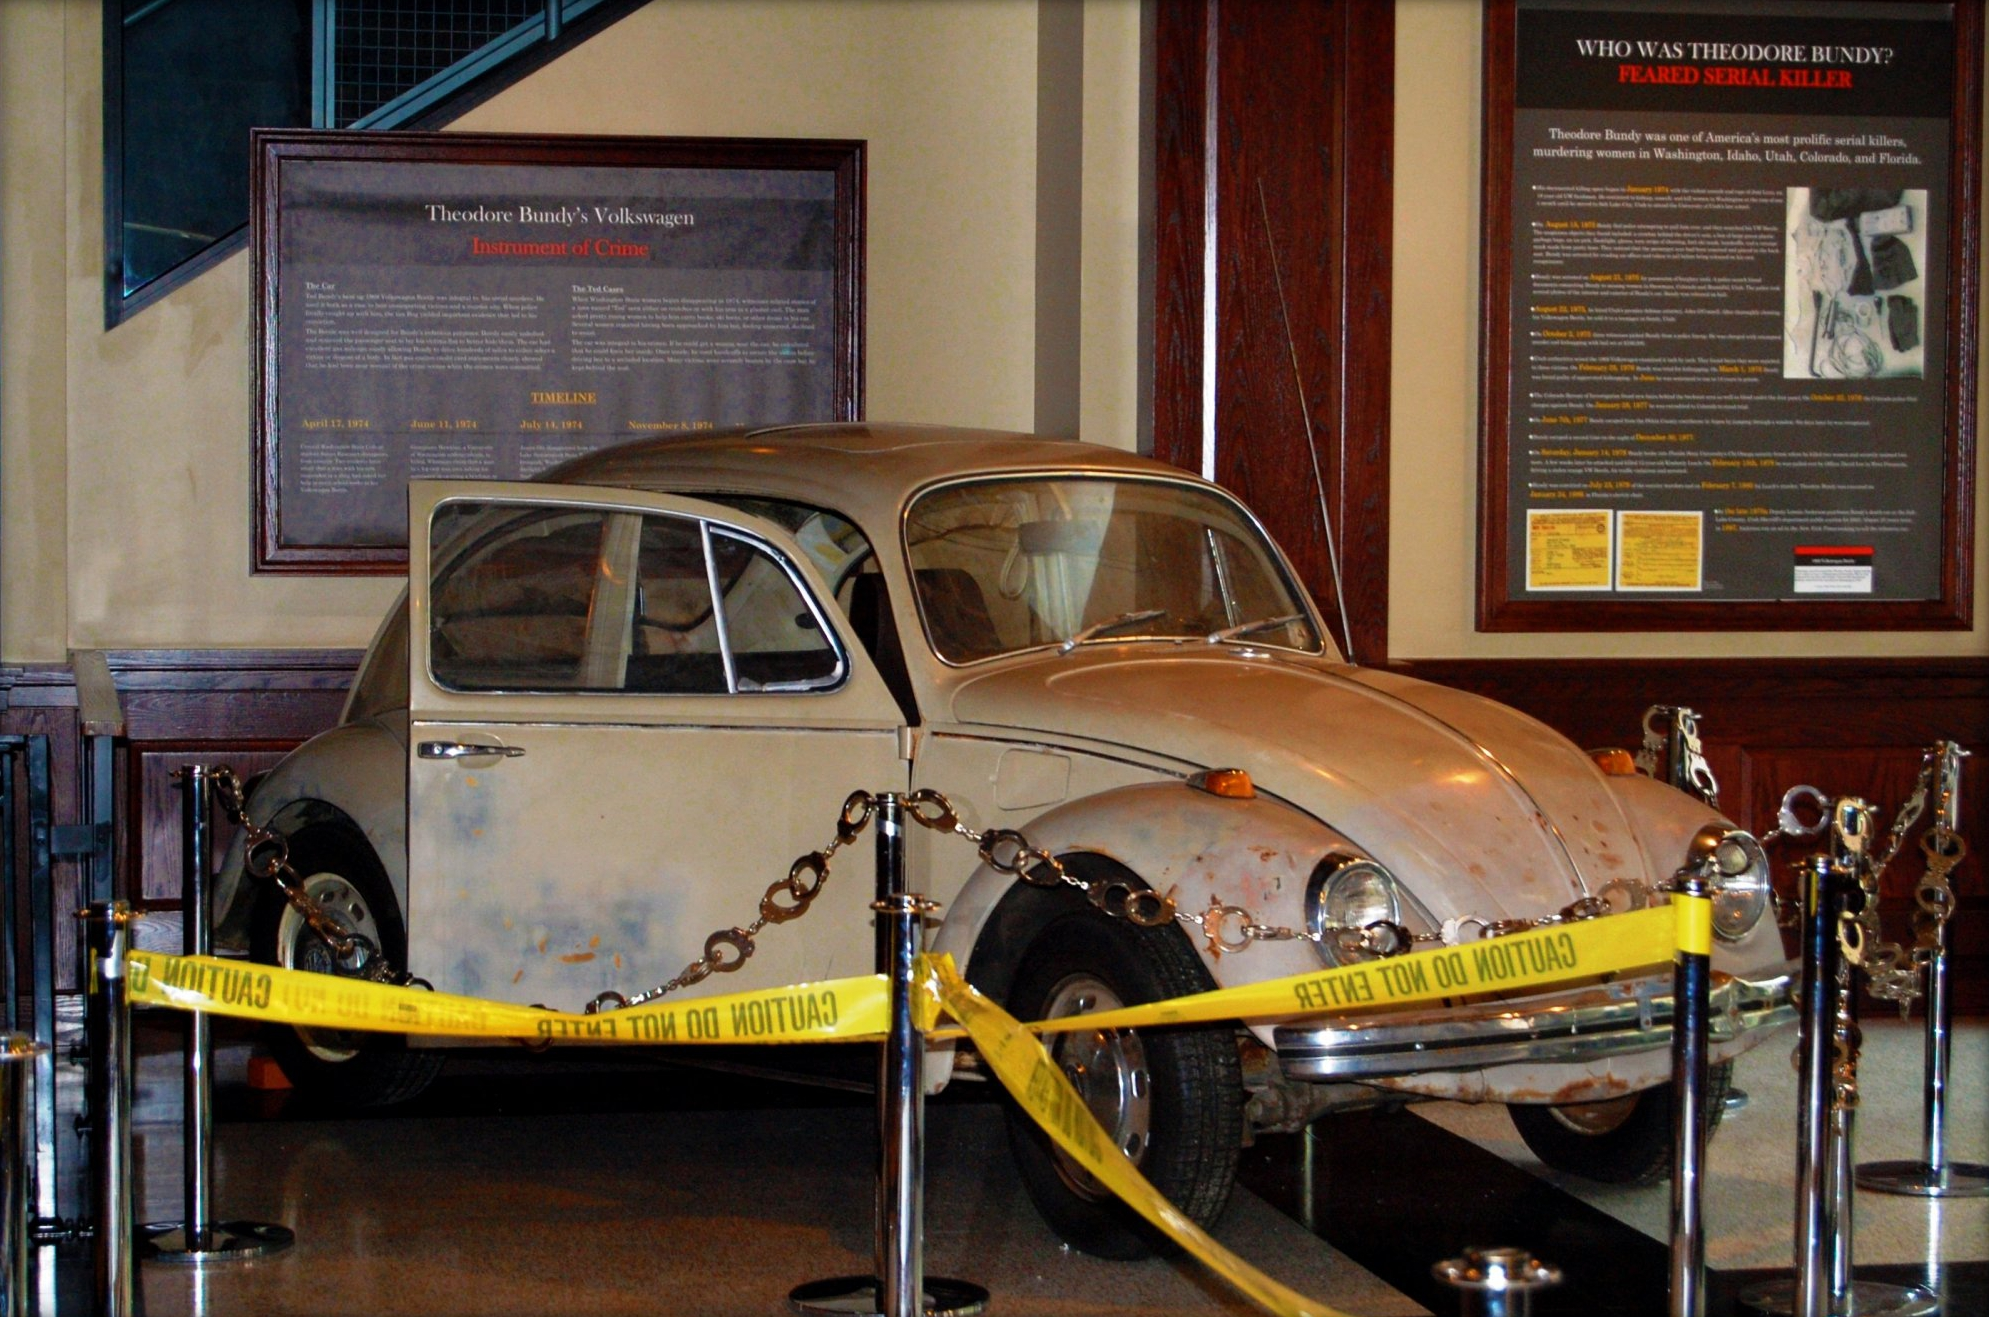 Ted Bundy's Volkswagen Beetle, the car he used while he lured his victims to their death.